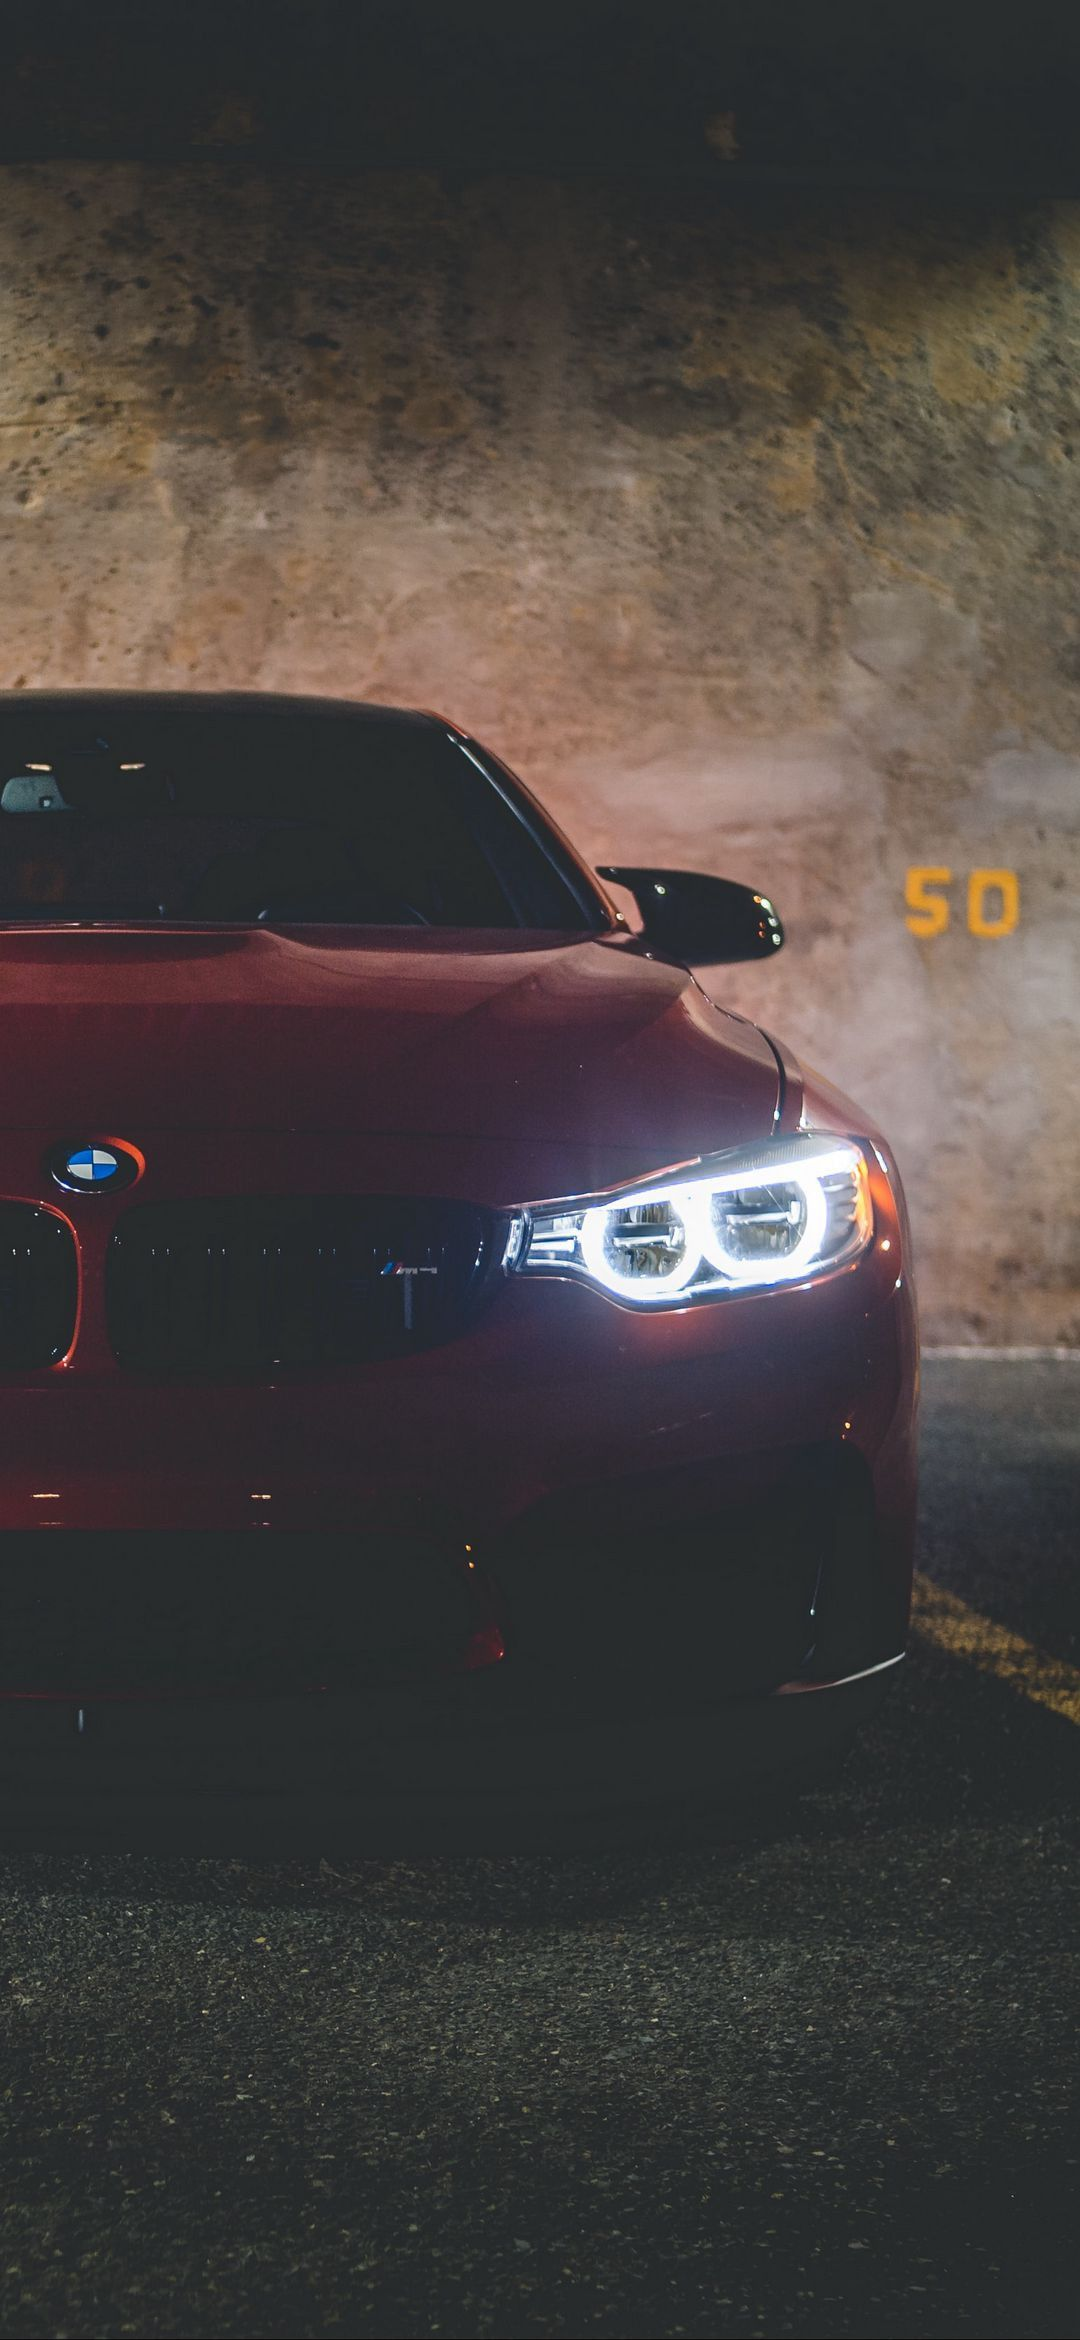 Pin By Abdul Basith On Cars Motorcycle Bmw Car Iphone Wallpaper Car Wallpapers